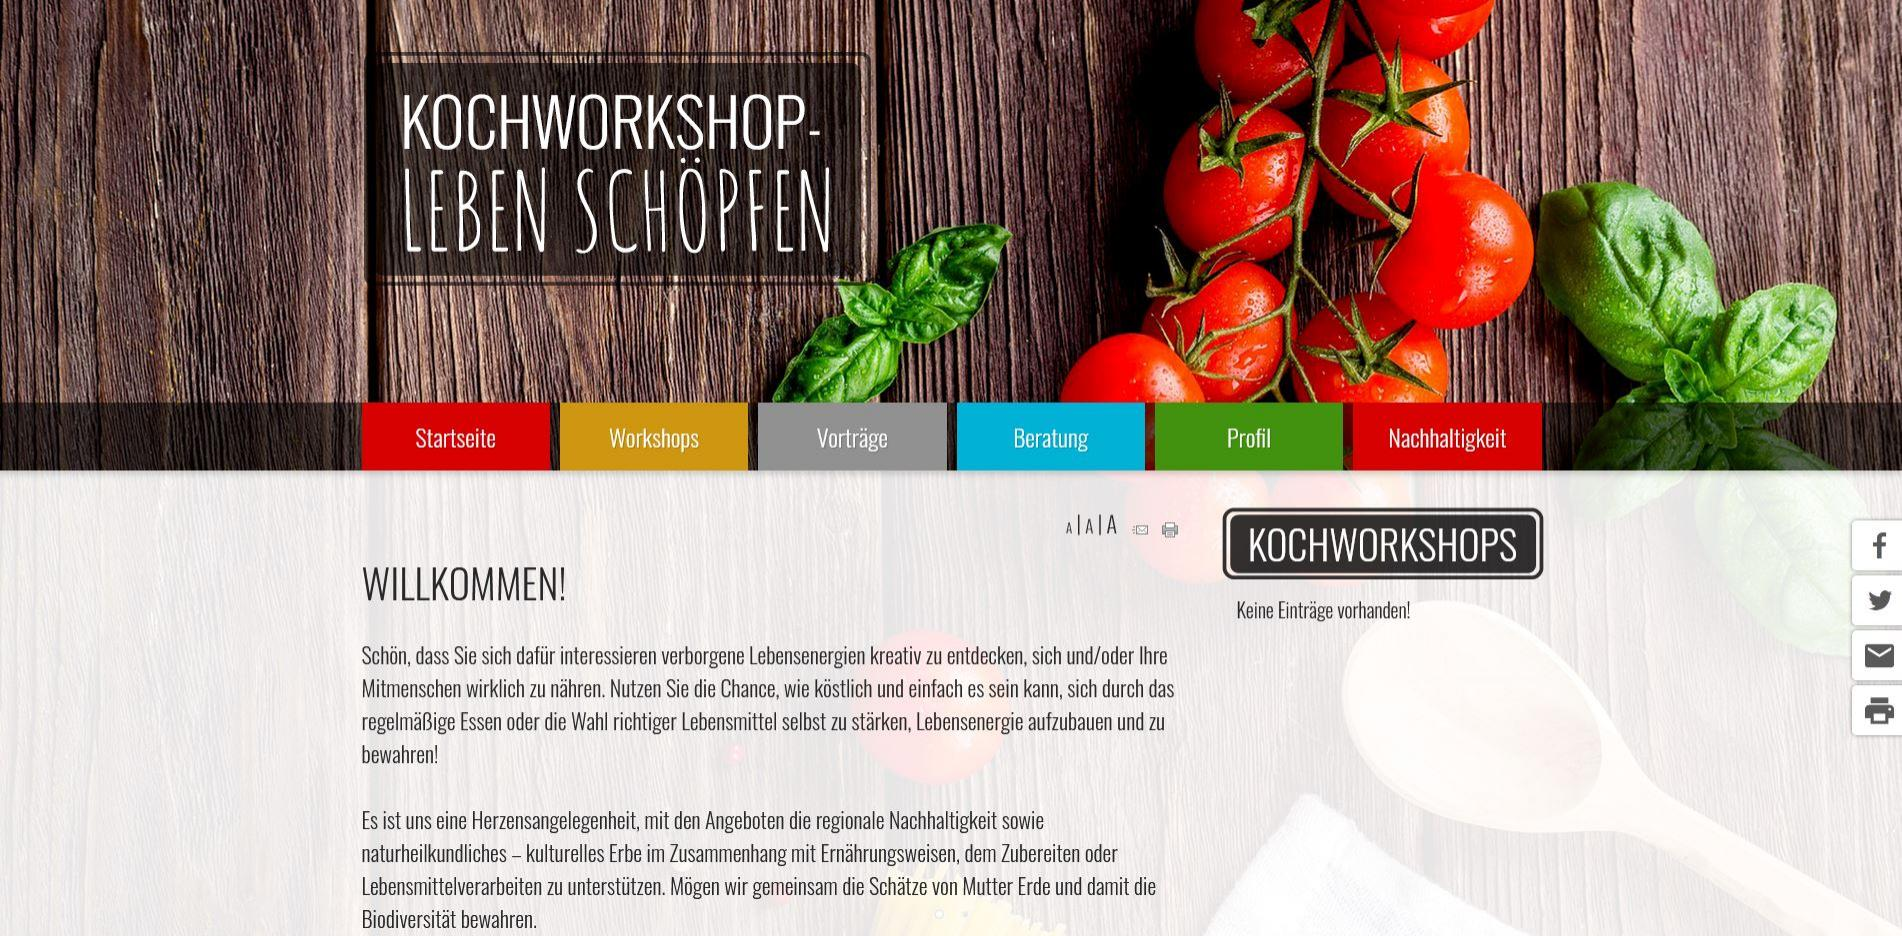 Kochworkshop